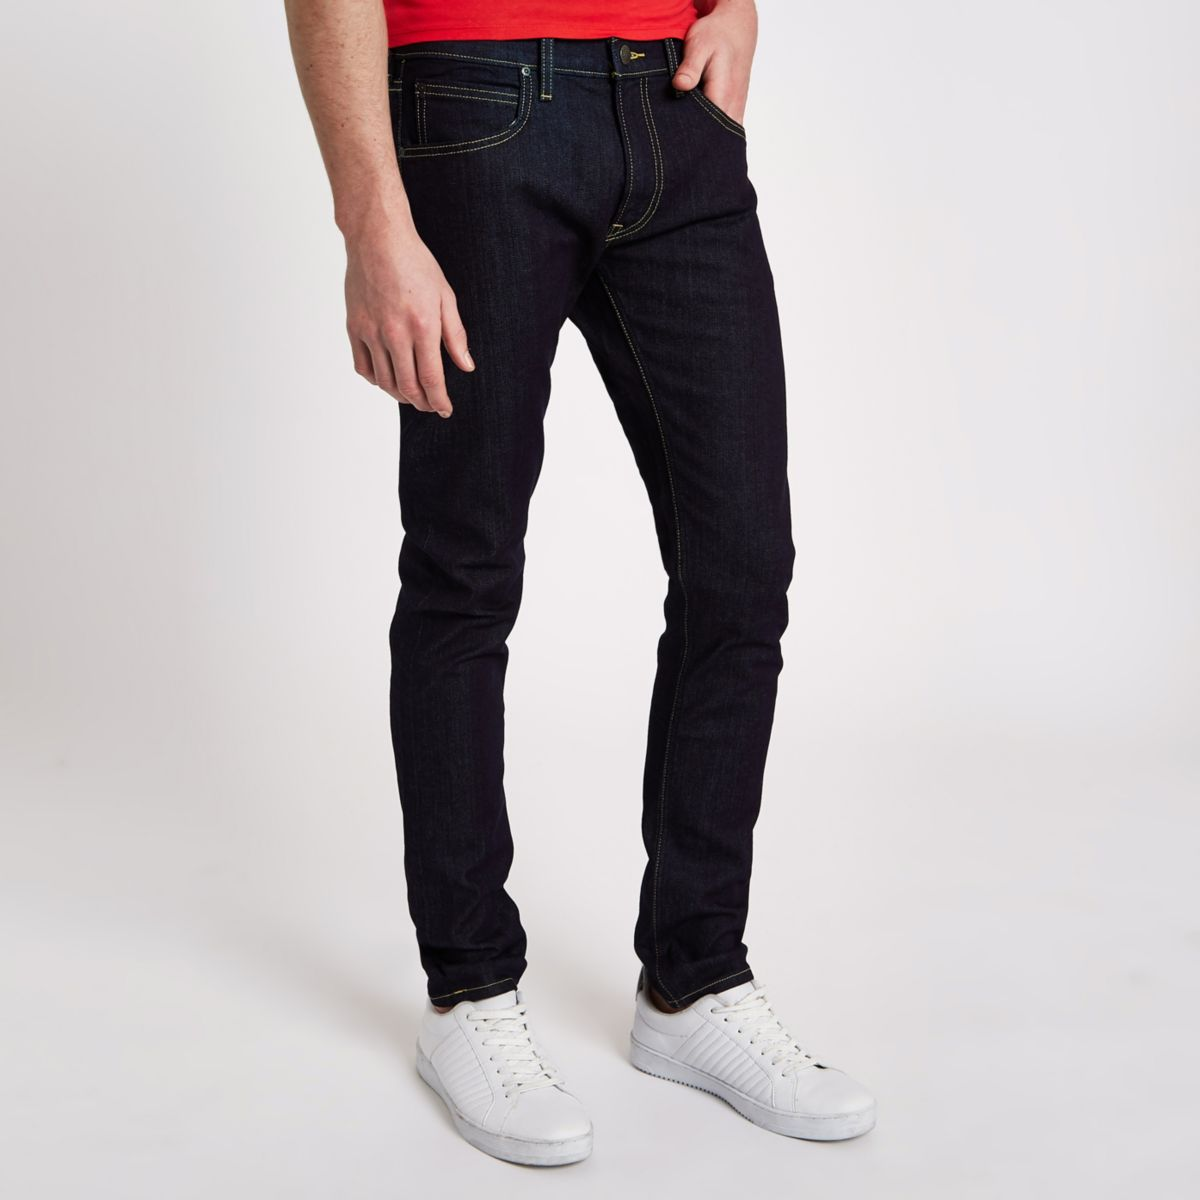 Dark blue Lee tapered jeans